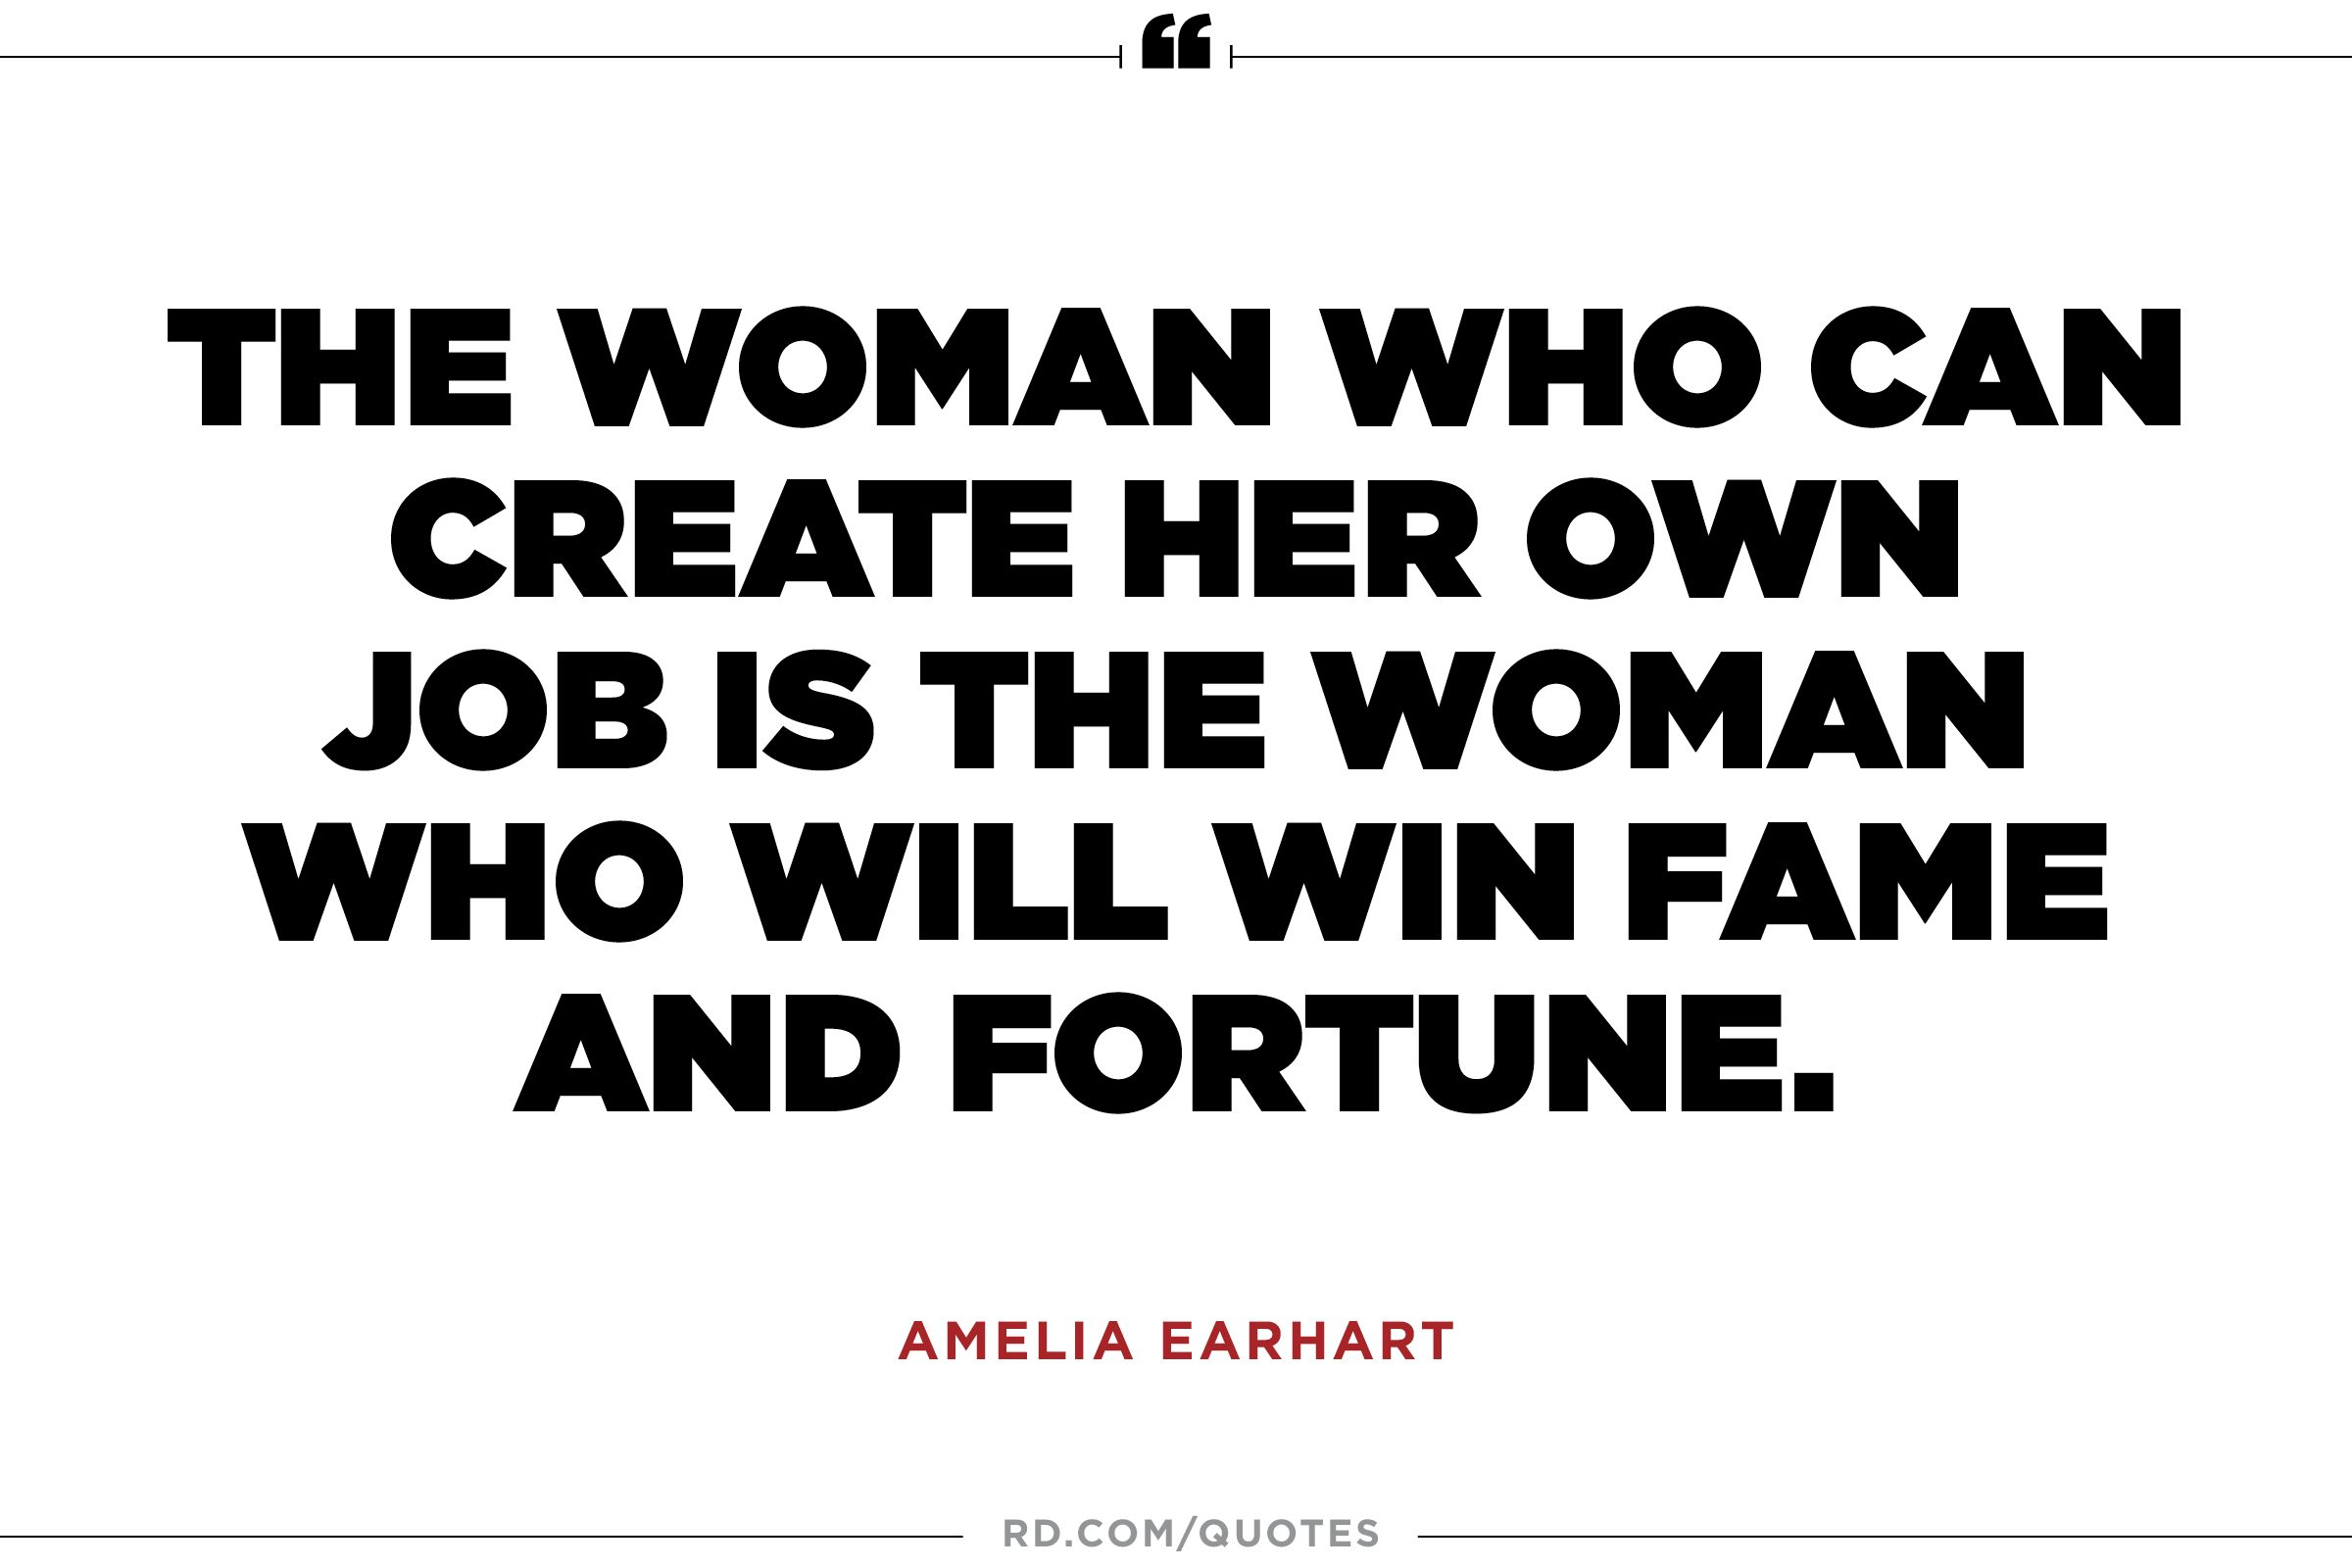 Women Empowerment Quotes 10 Amelia Earhart Quotes To Propel You To Greatness  Reader's Digest